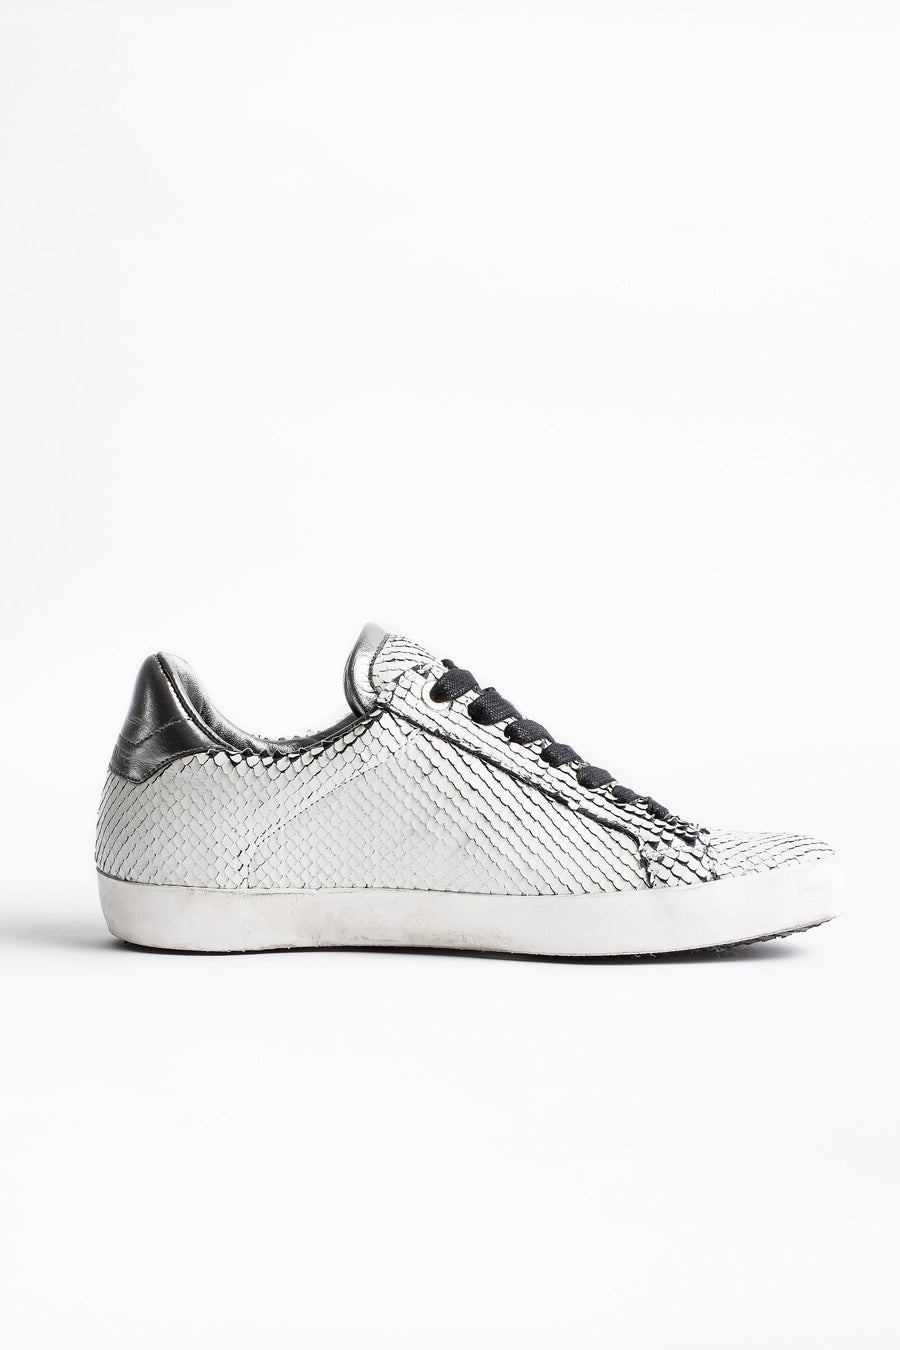 Zadig & Voltaire Neo Keith Flash Sneakers